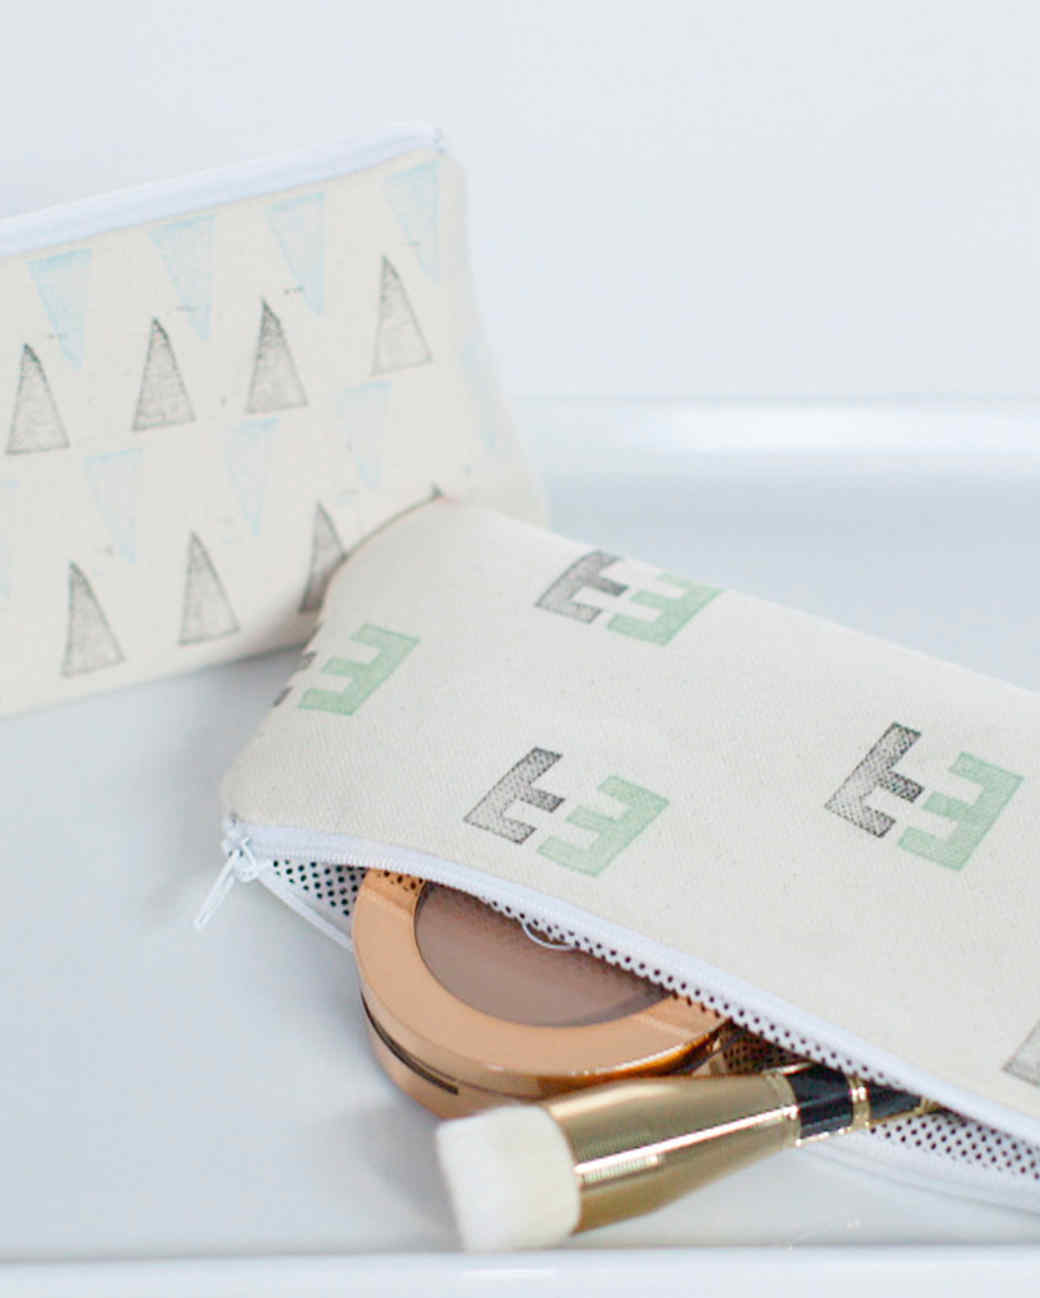 diy-style-erin-furey-diy-makeupbag-craft-final-201508-diy0051.jpg